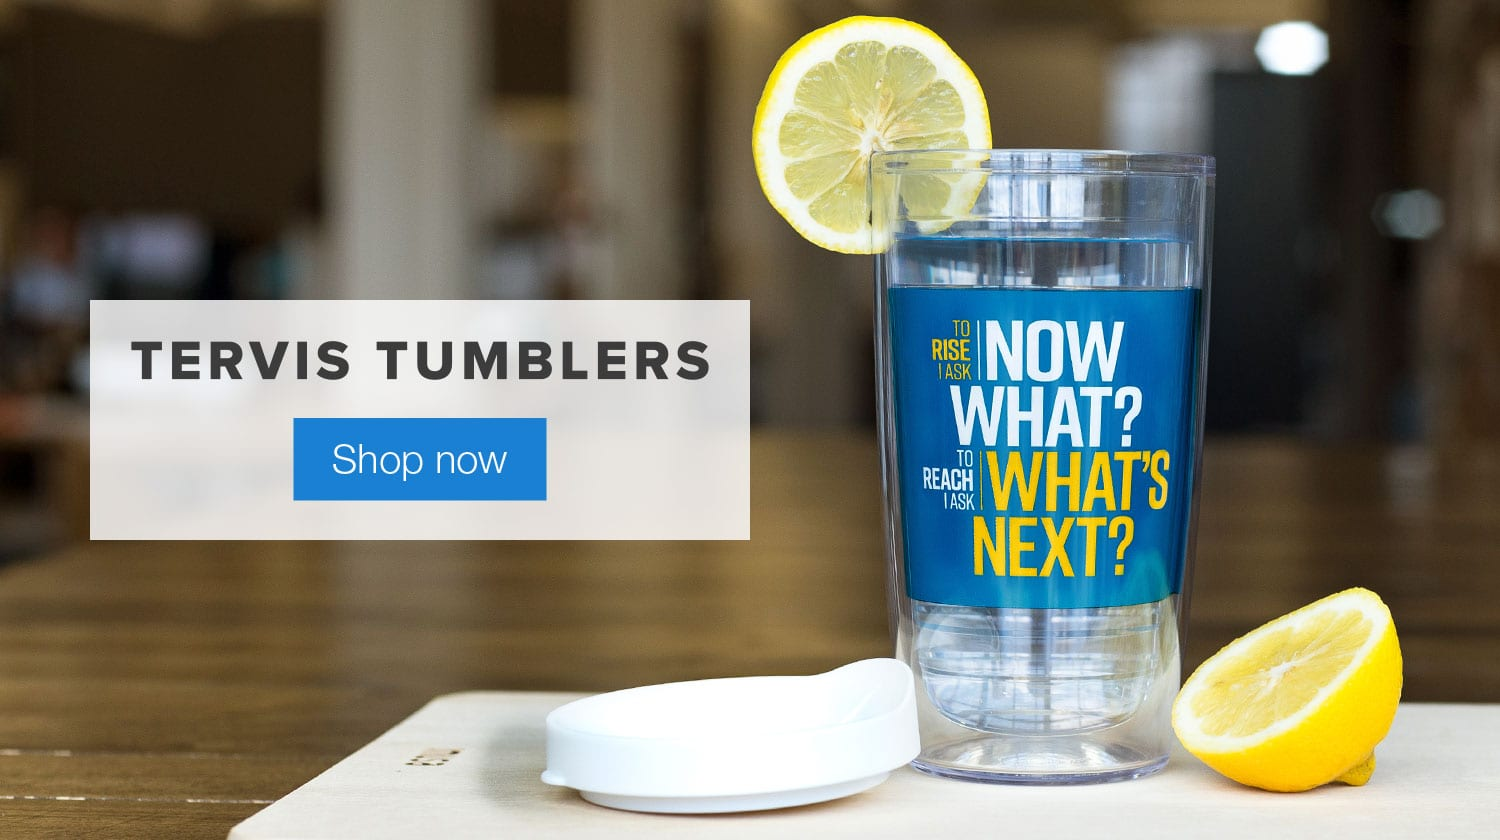 Rise & Reach Tervis Tumbler. Shop Now.